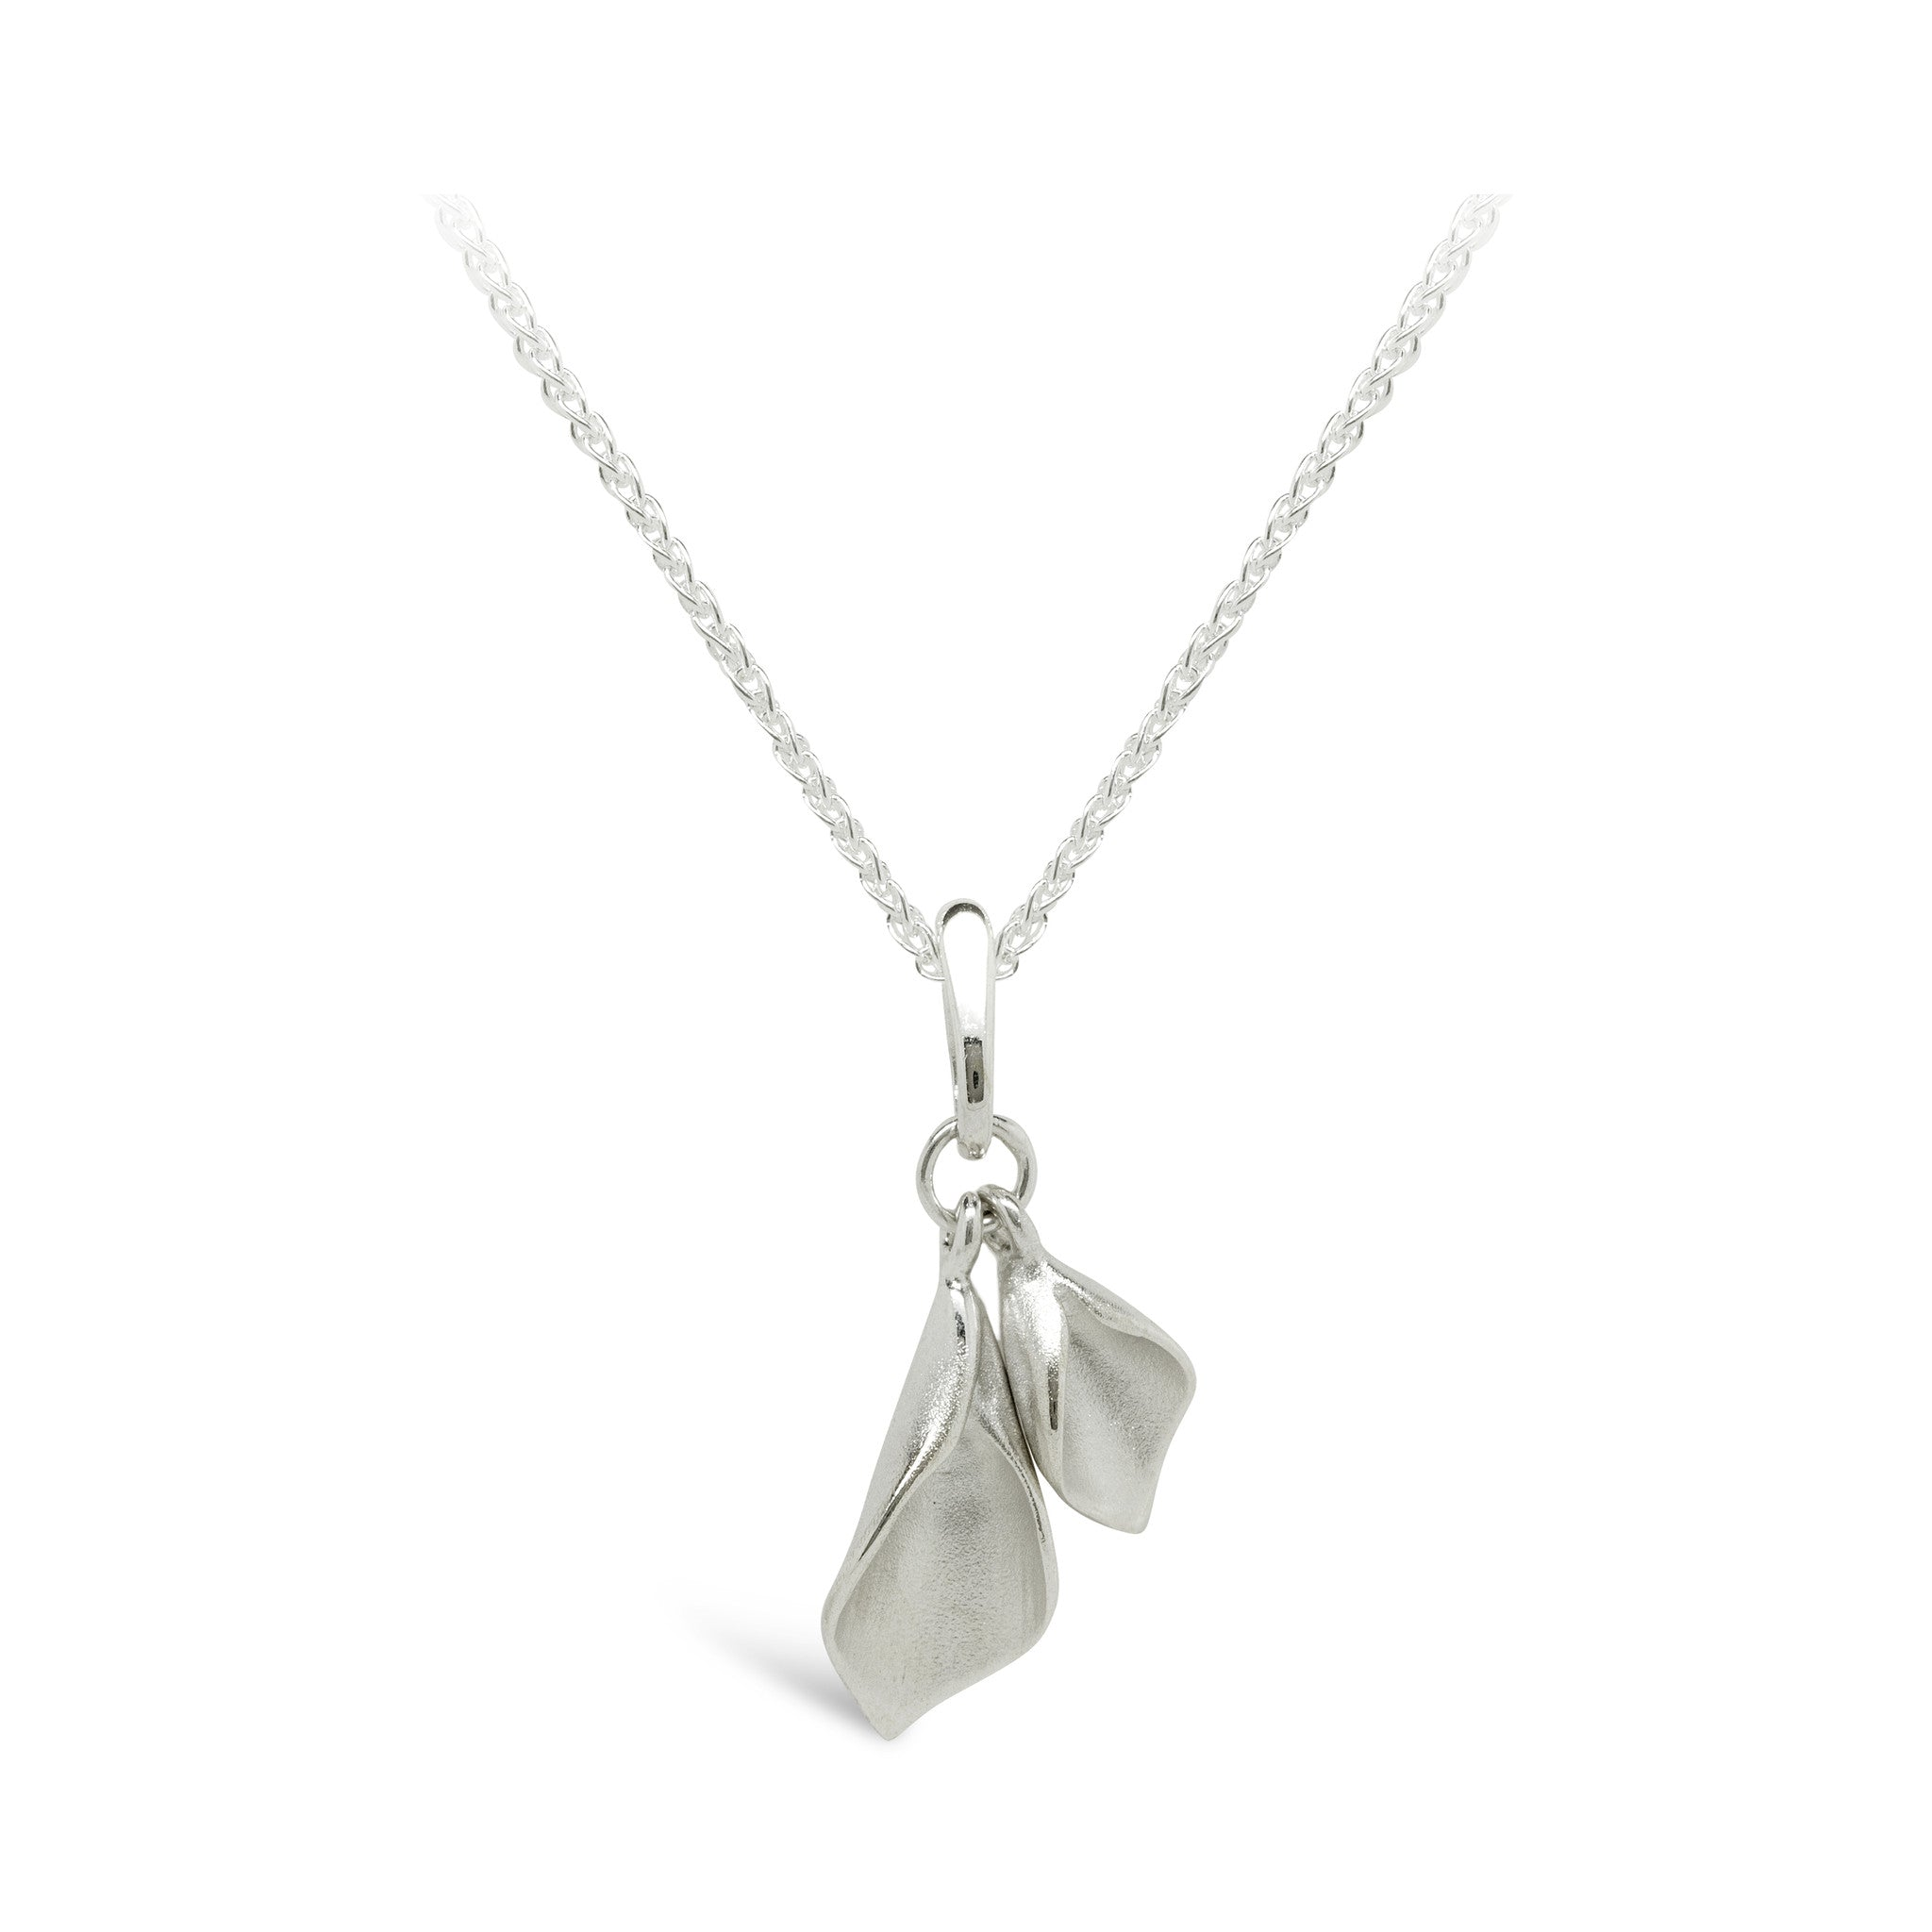 24281d31a W2SP Lilium Small Double Calla Lily Pendant - Collette Waudby